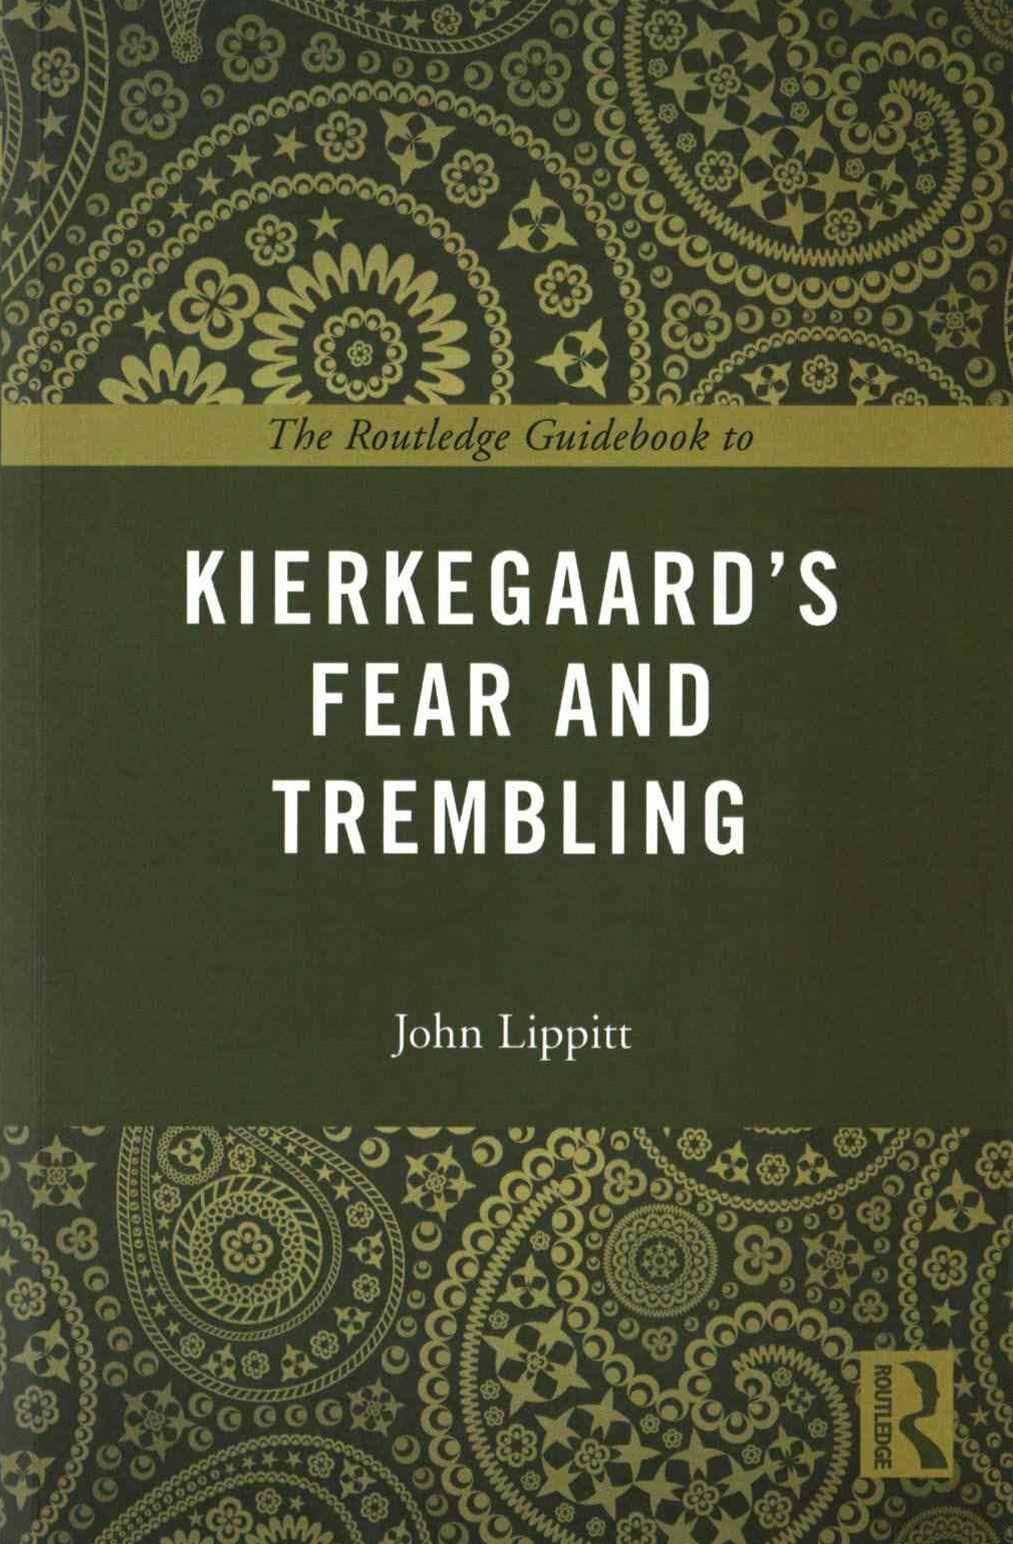 Routledge Guidebook to Kierkegaard's Fear and Trembling